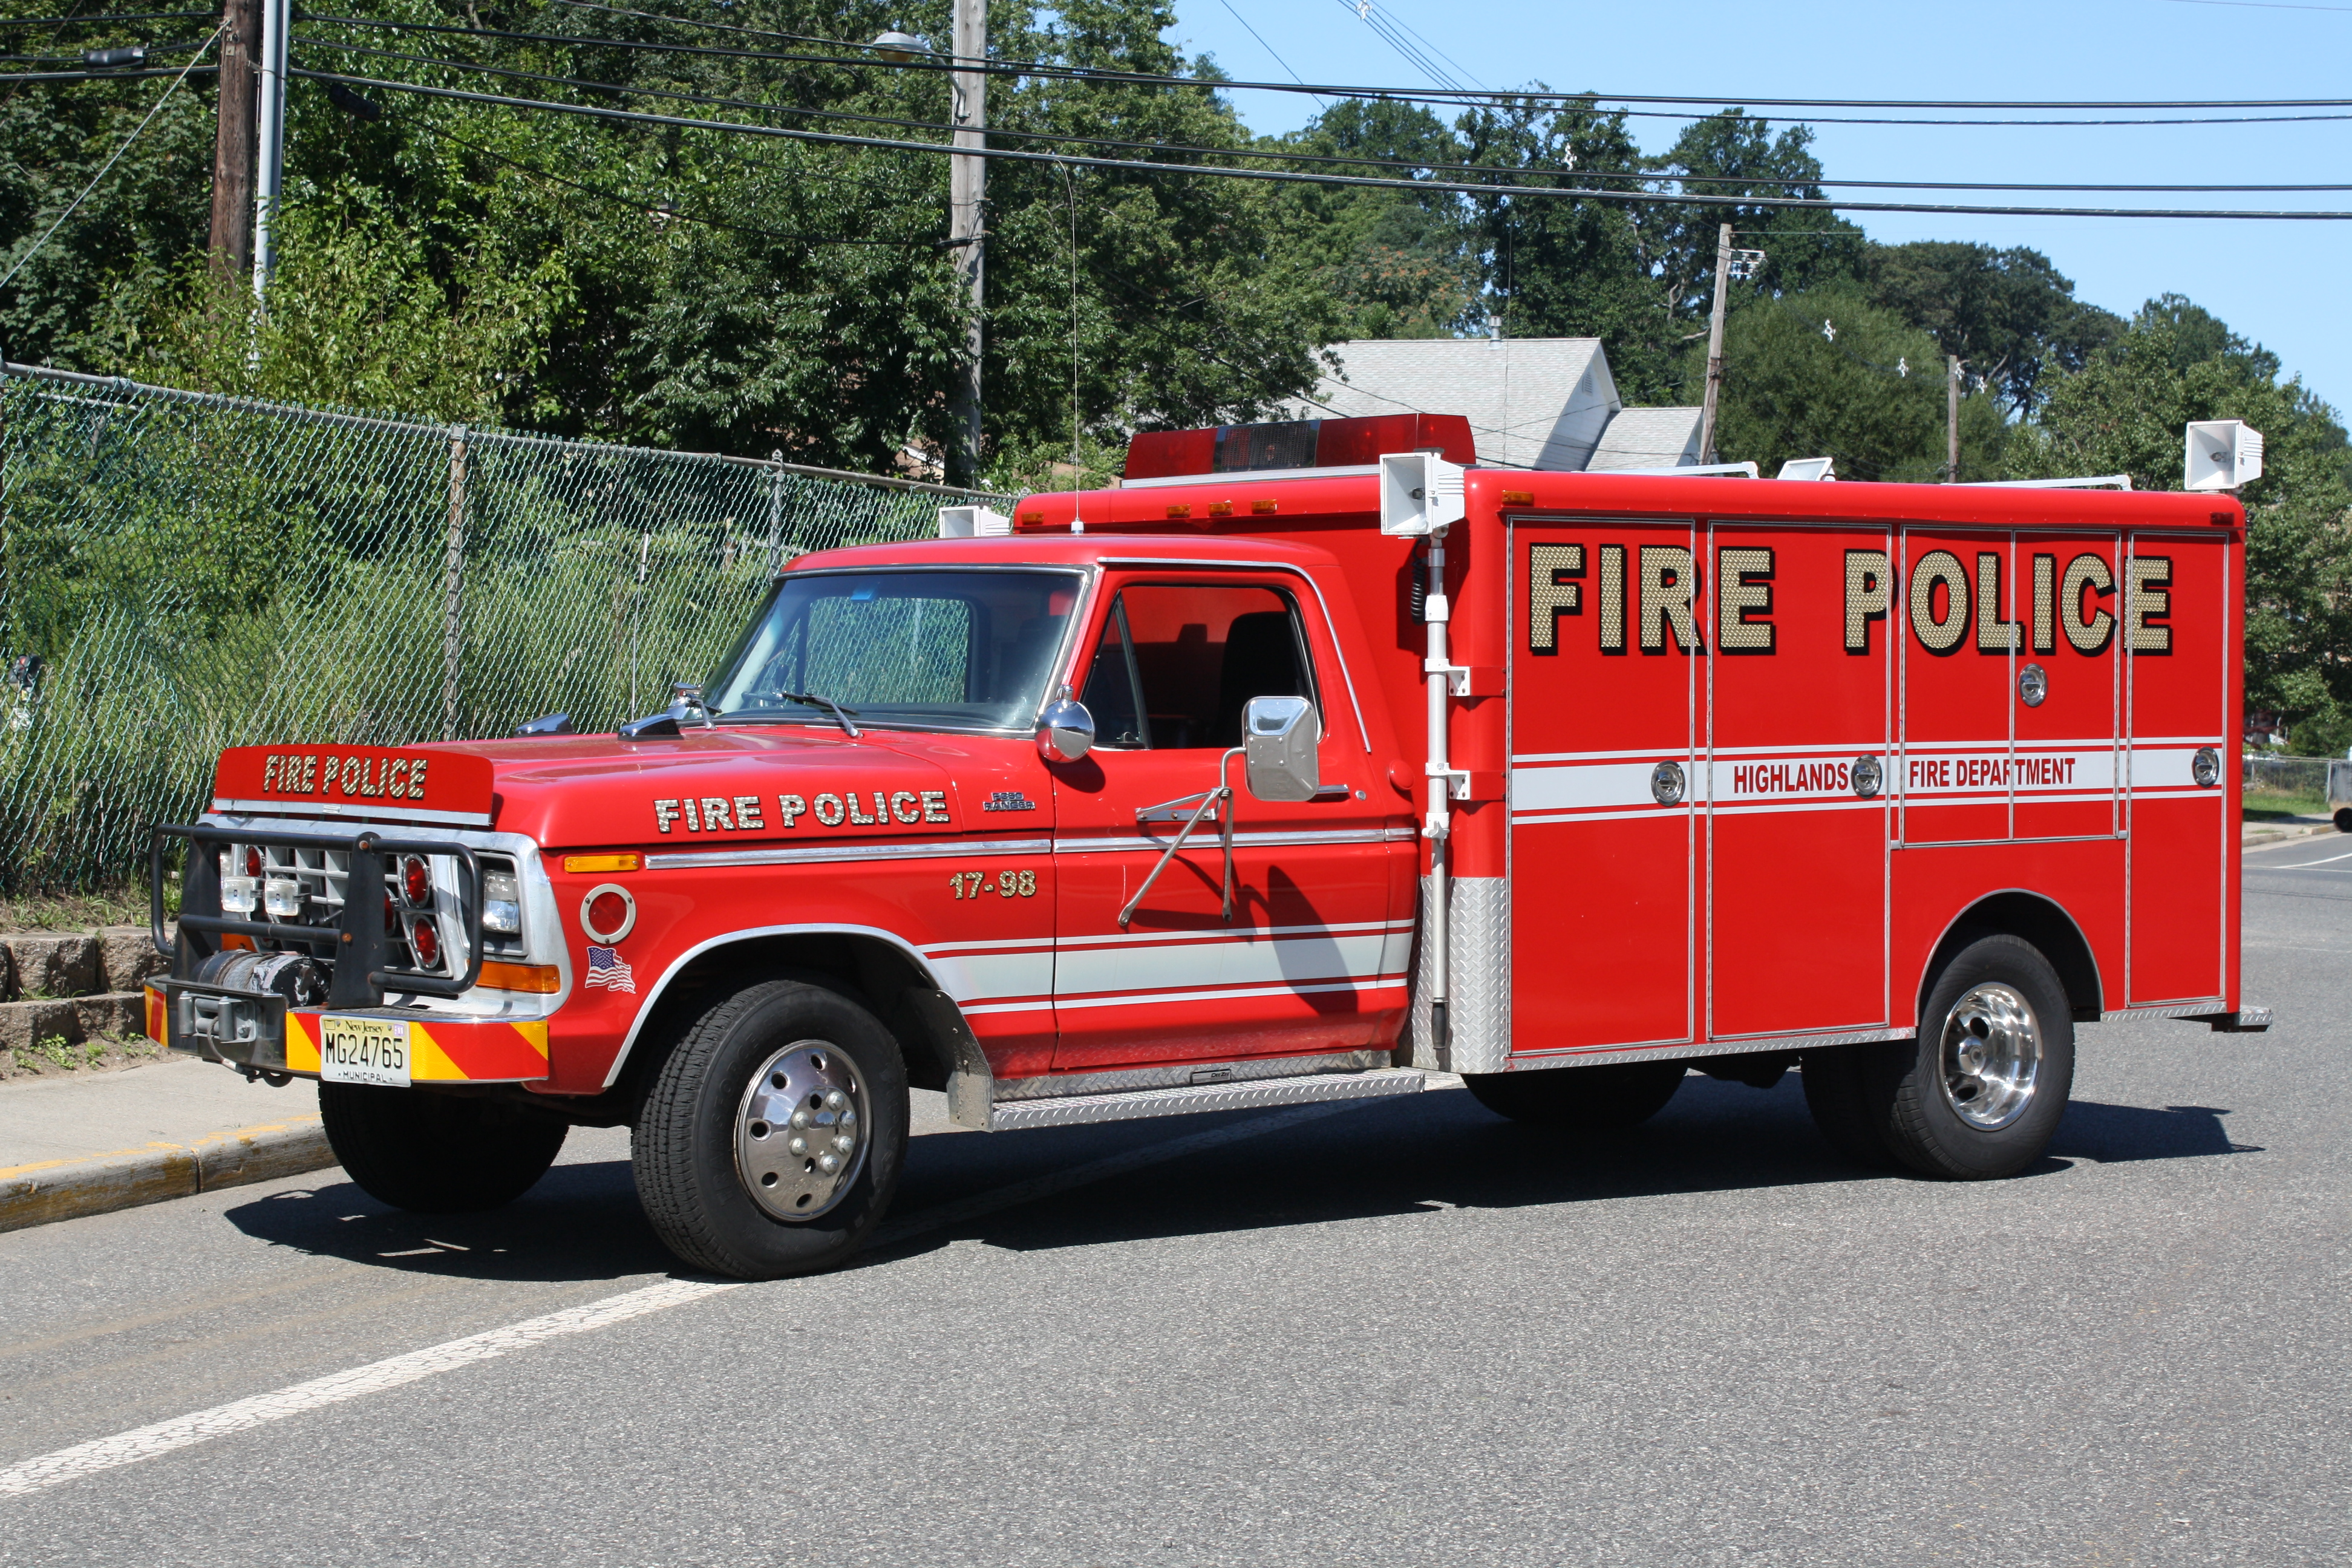 Highlands Fire Department Fire Police 17-98 3